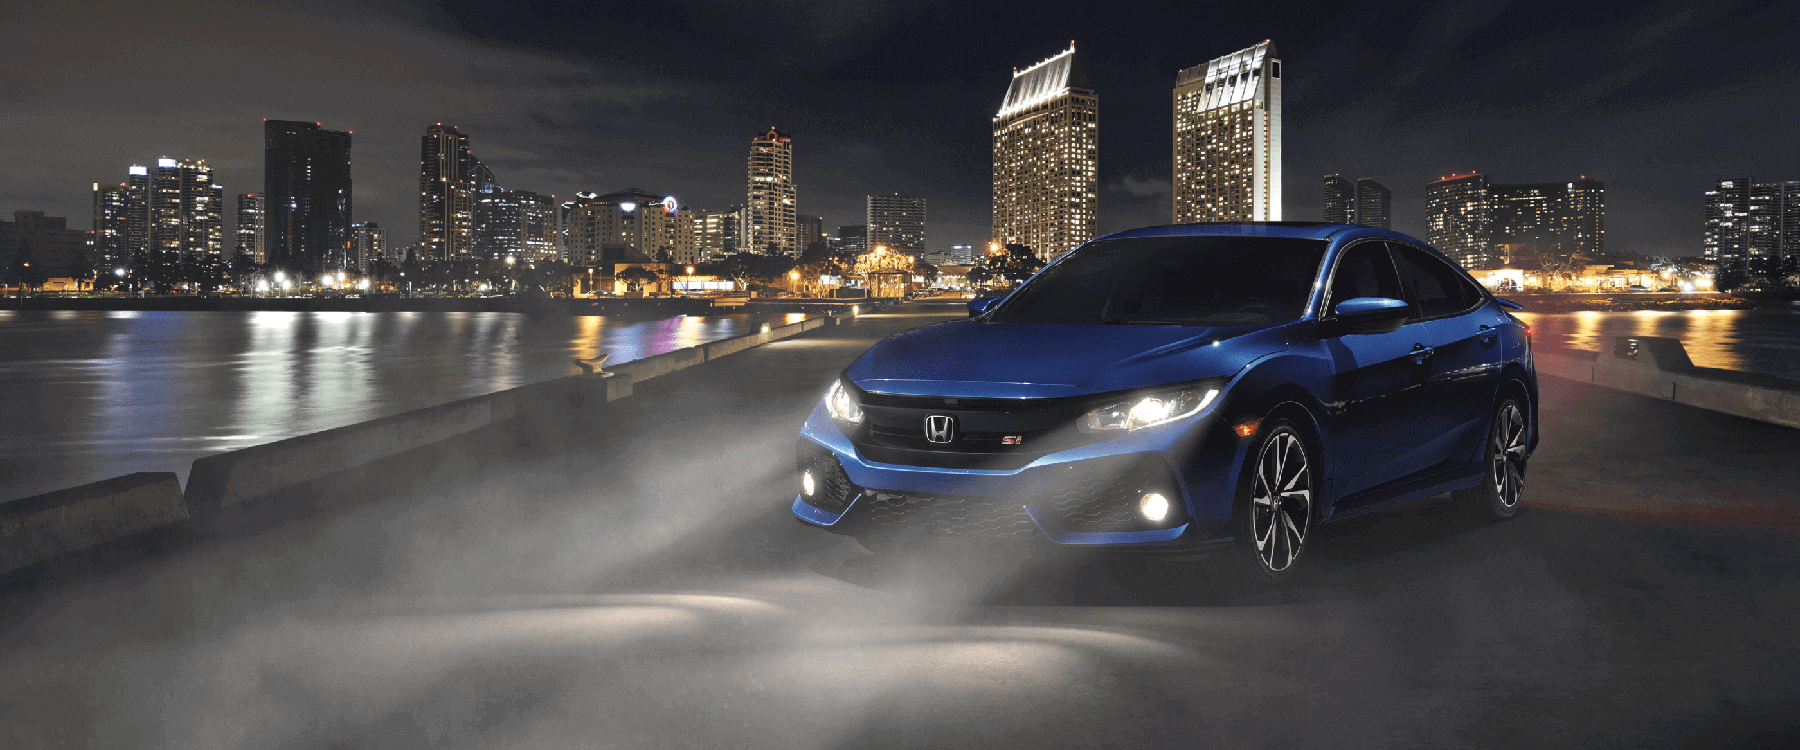 Delightful 2017 Honda Civic Si Sedan